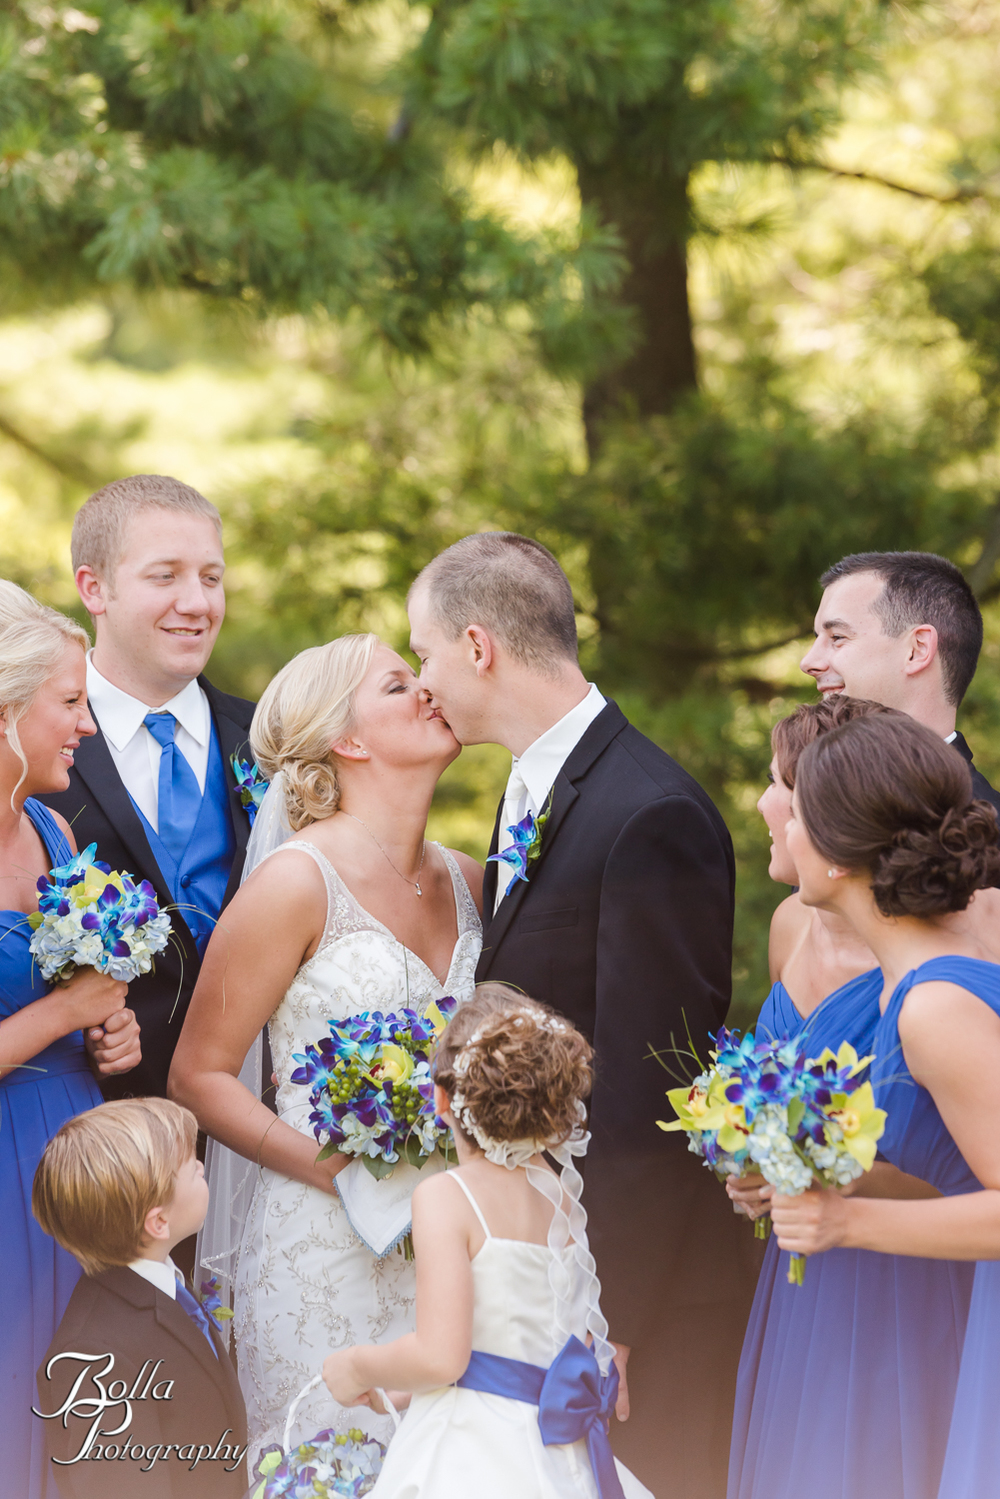 Bolla_Photography_St_Louis_wedding_photographer_Edwardsville_Highland-0326.jpg